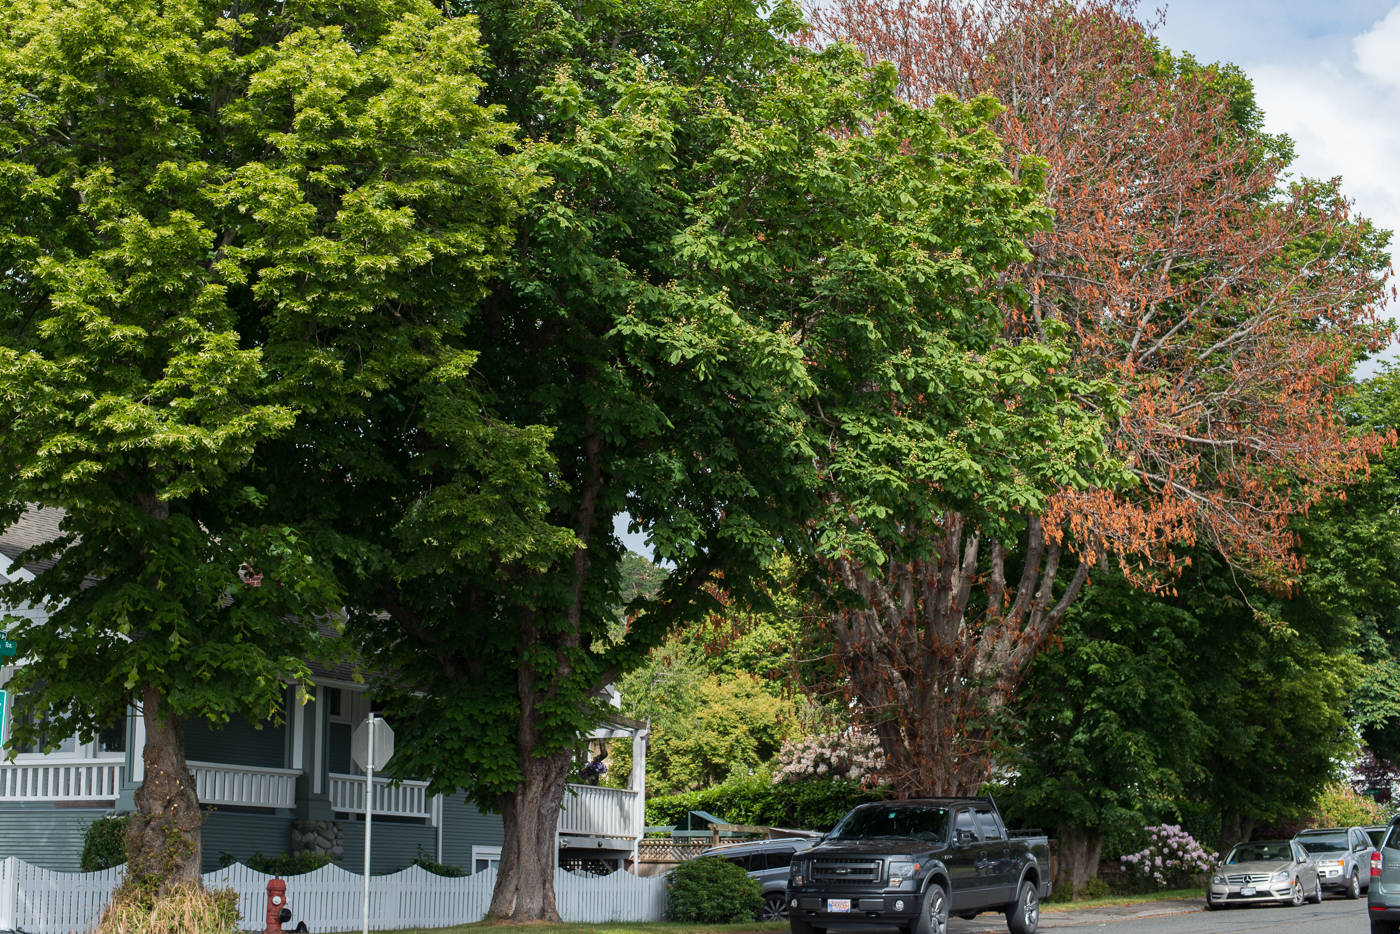 The sudden death of a large chestnut tree that may have been intentionally poisoned has spurred an investigation by Oak Bay Police and the District of Oak Bay. (Keri Coles/Oak Bay News)